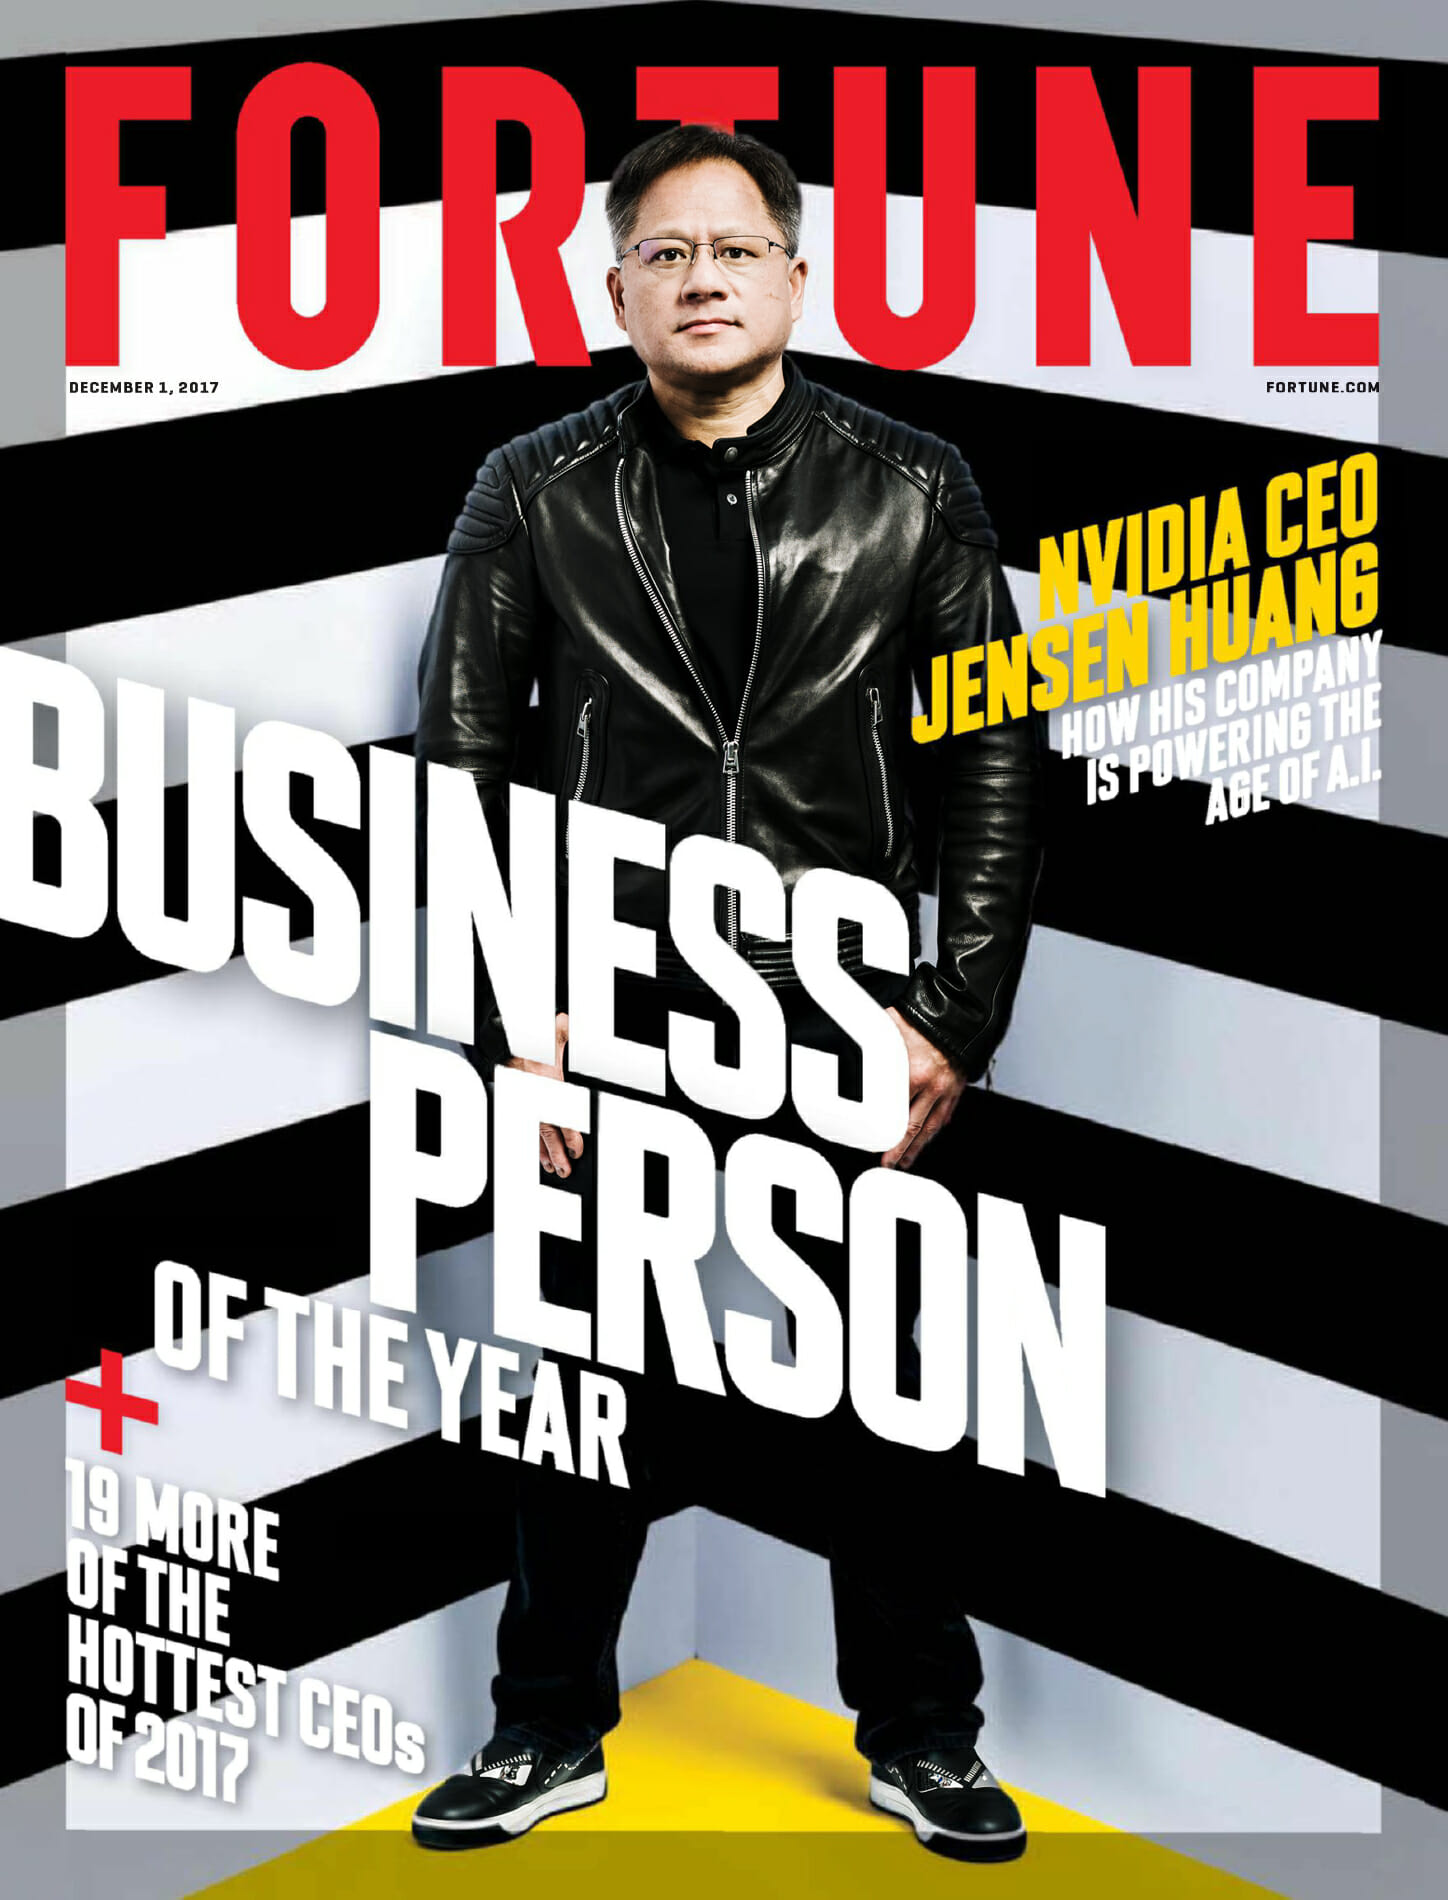 Jensen Huang of Nvidia on the cover of Fortune magazine